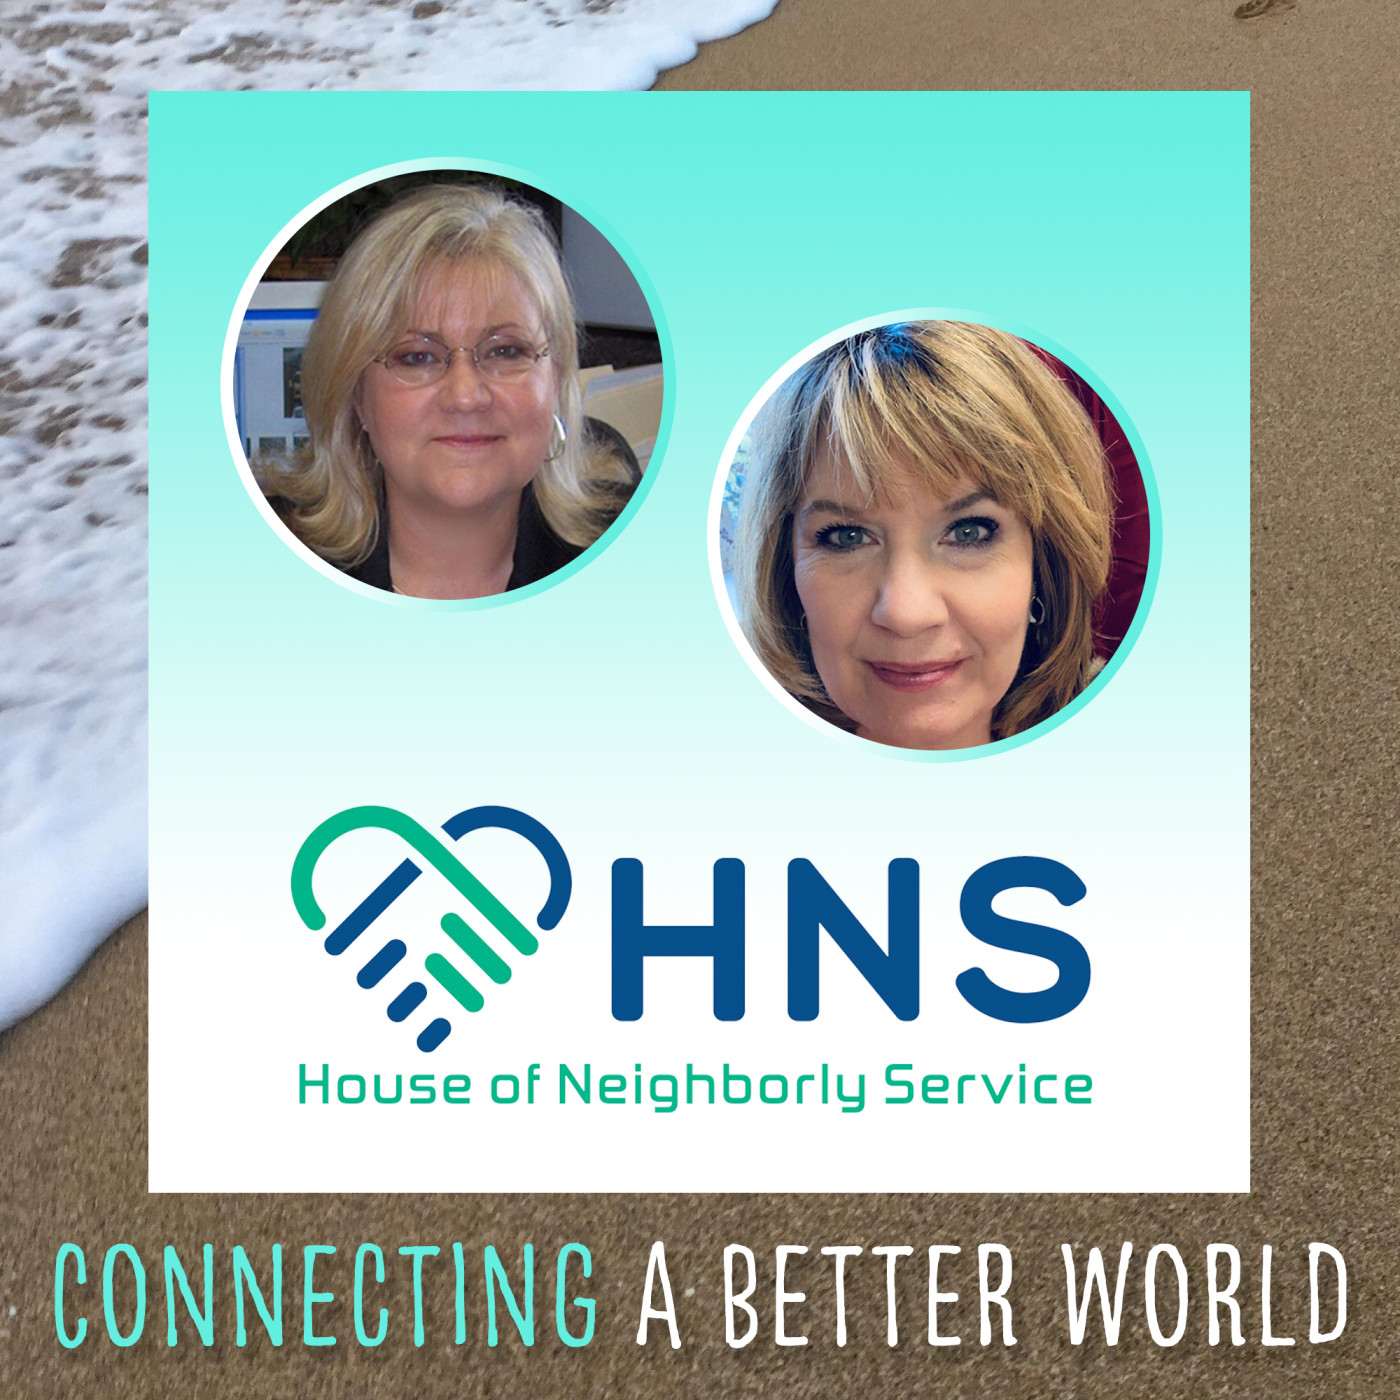 House of Neighborly Service